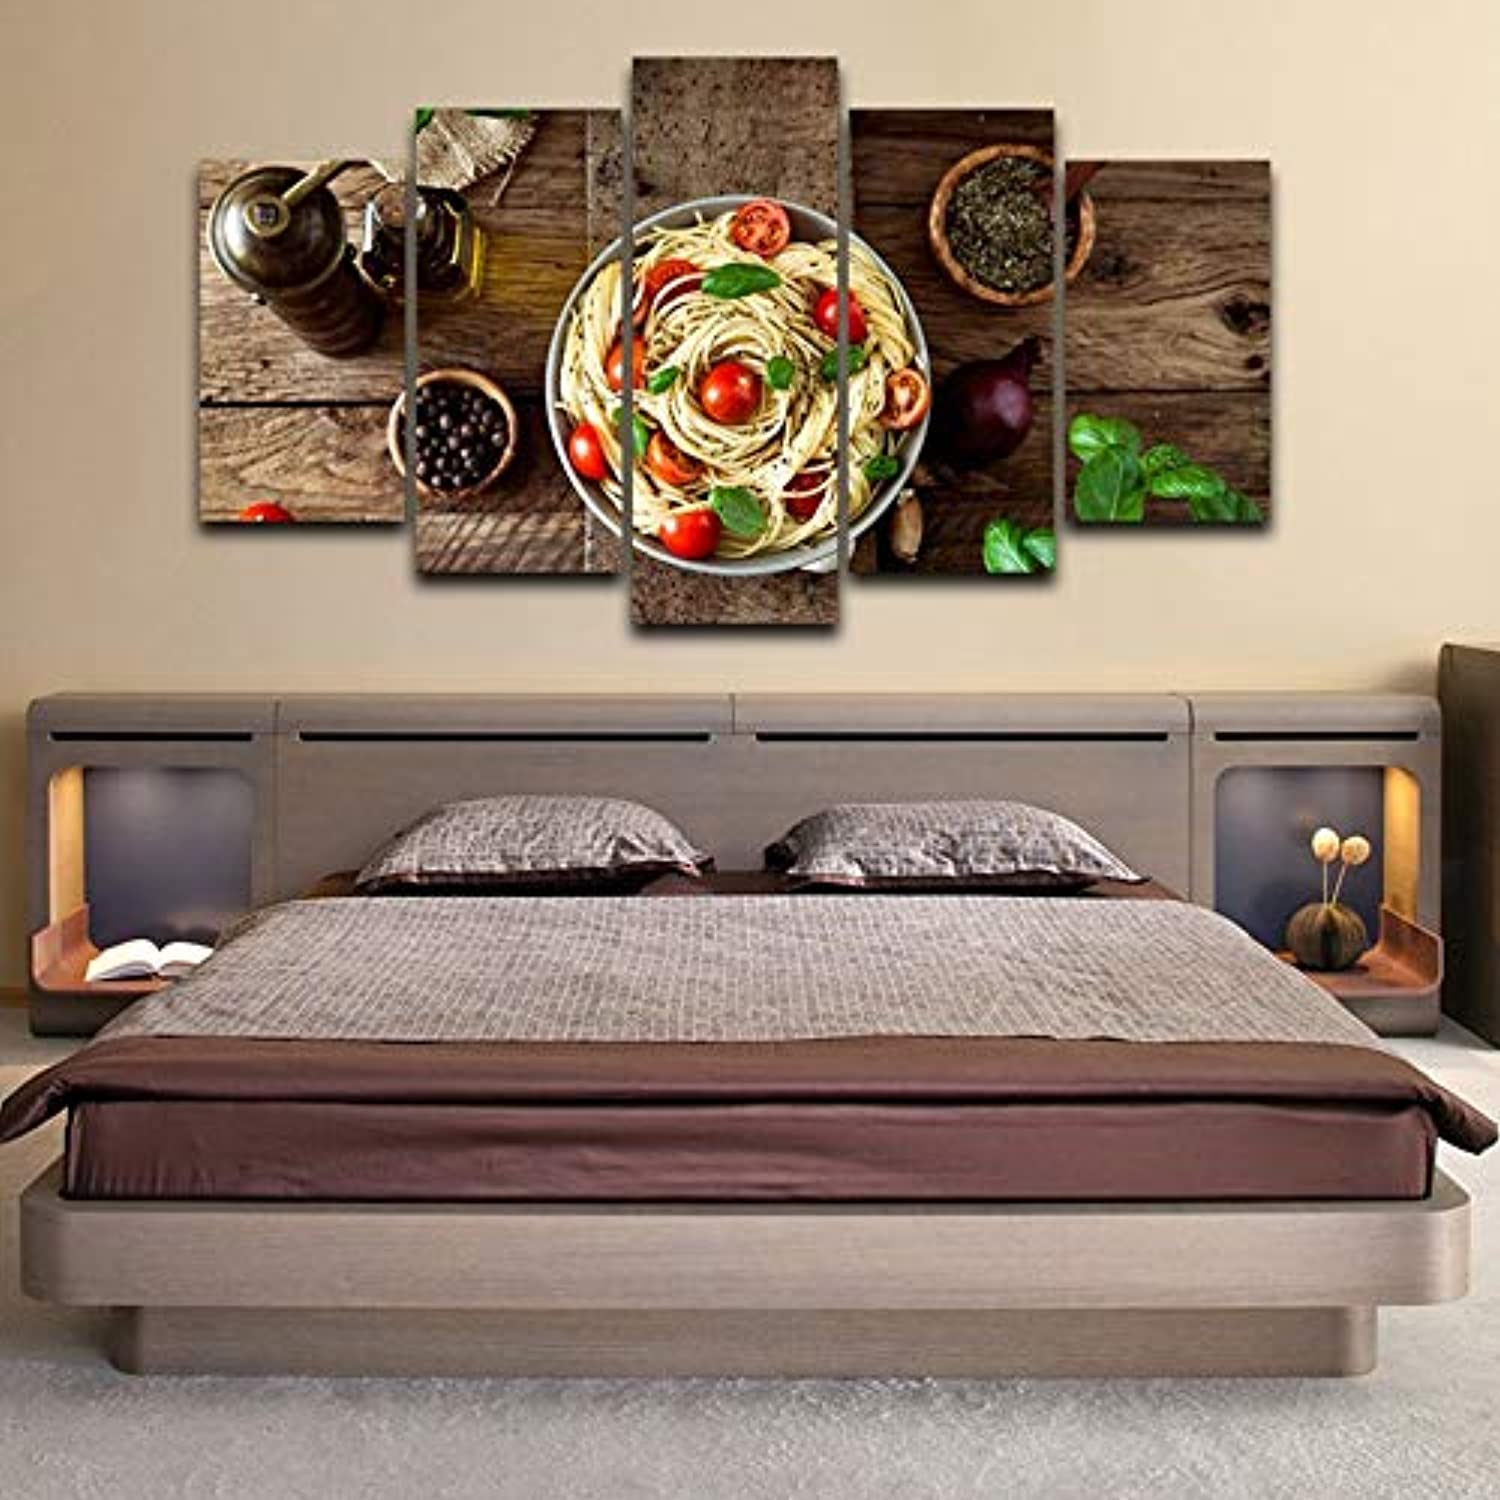 LONLLHB Painting Modular Home Decor Canvas Pictures 5 Piece Kitchen Pasta Olive Oil Garlic Paintings Kitchen Hd Prints Poster Wall Art